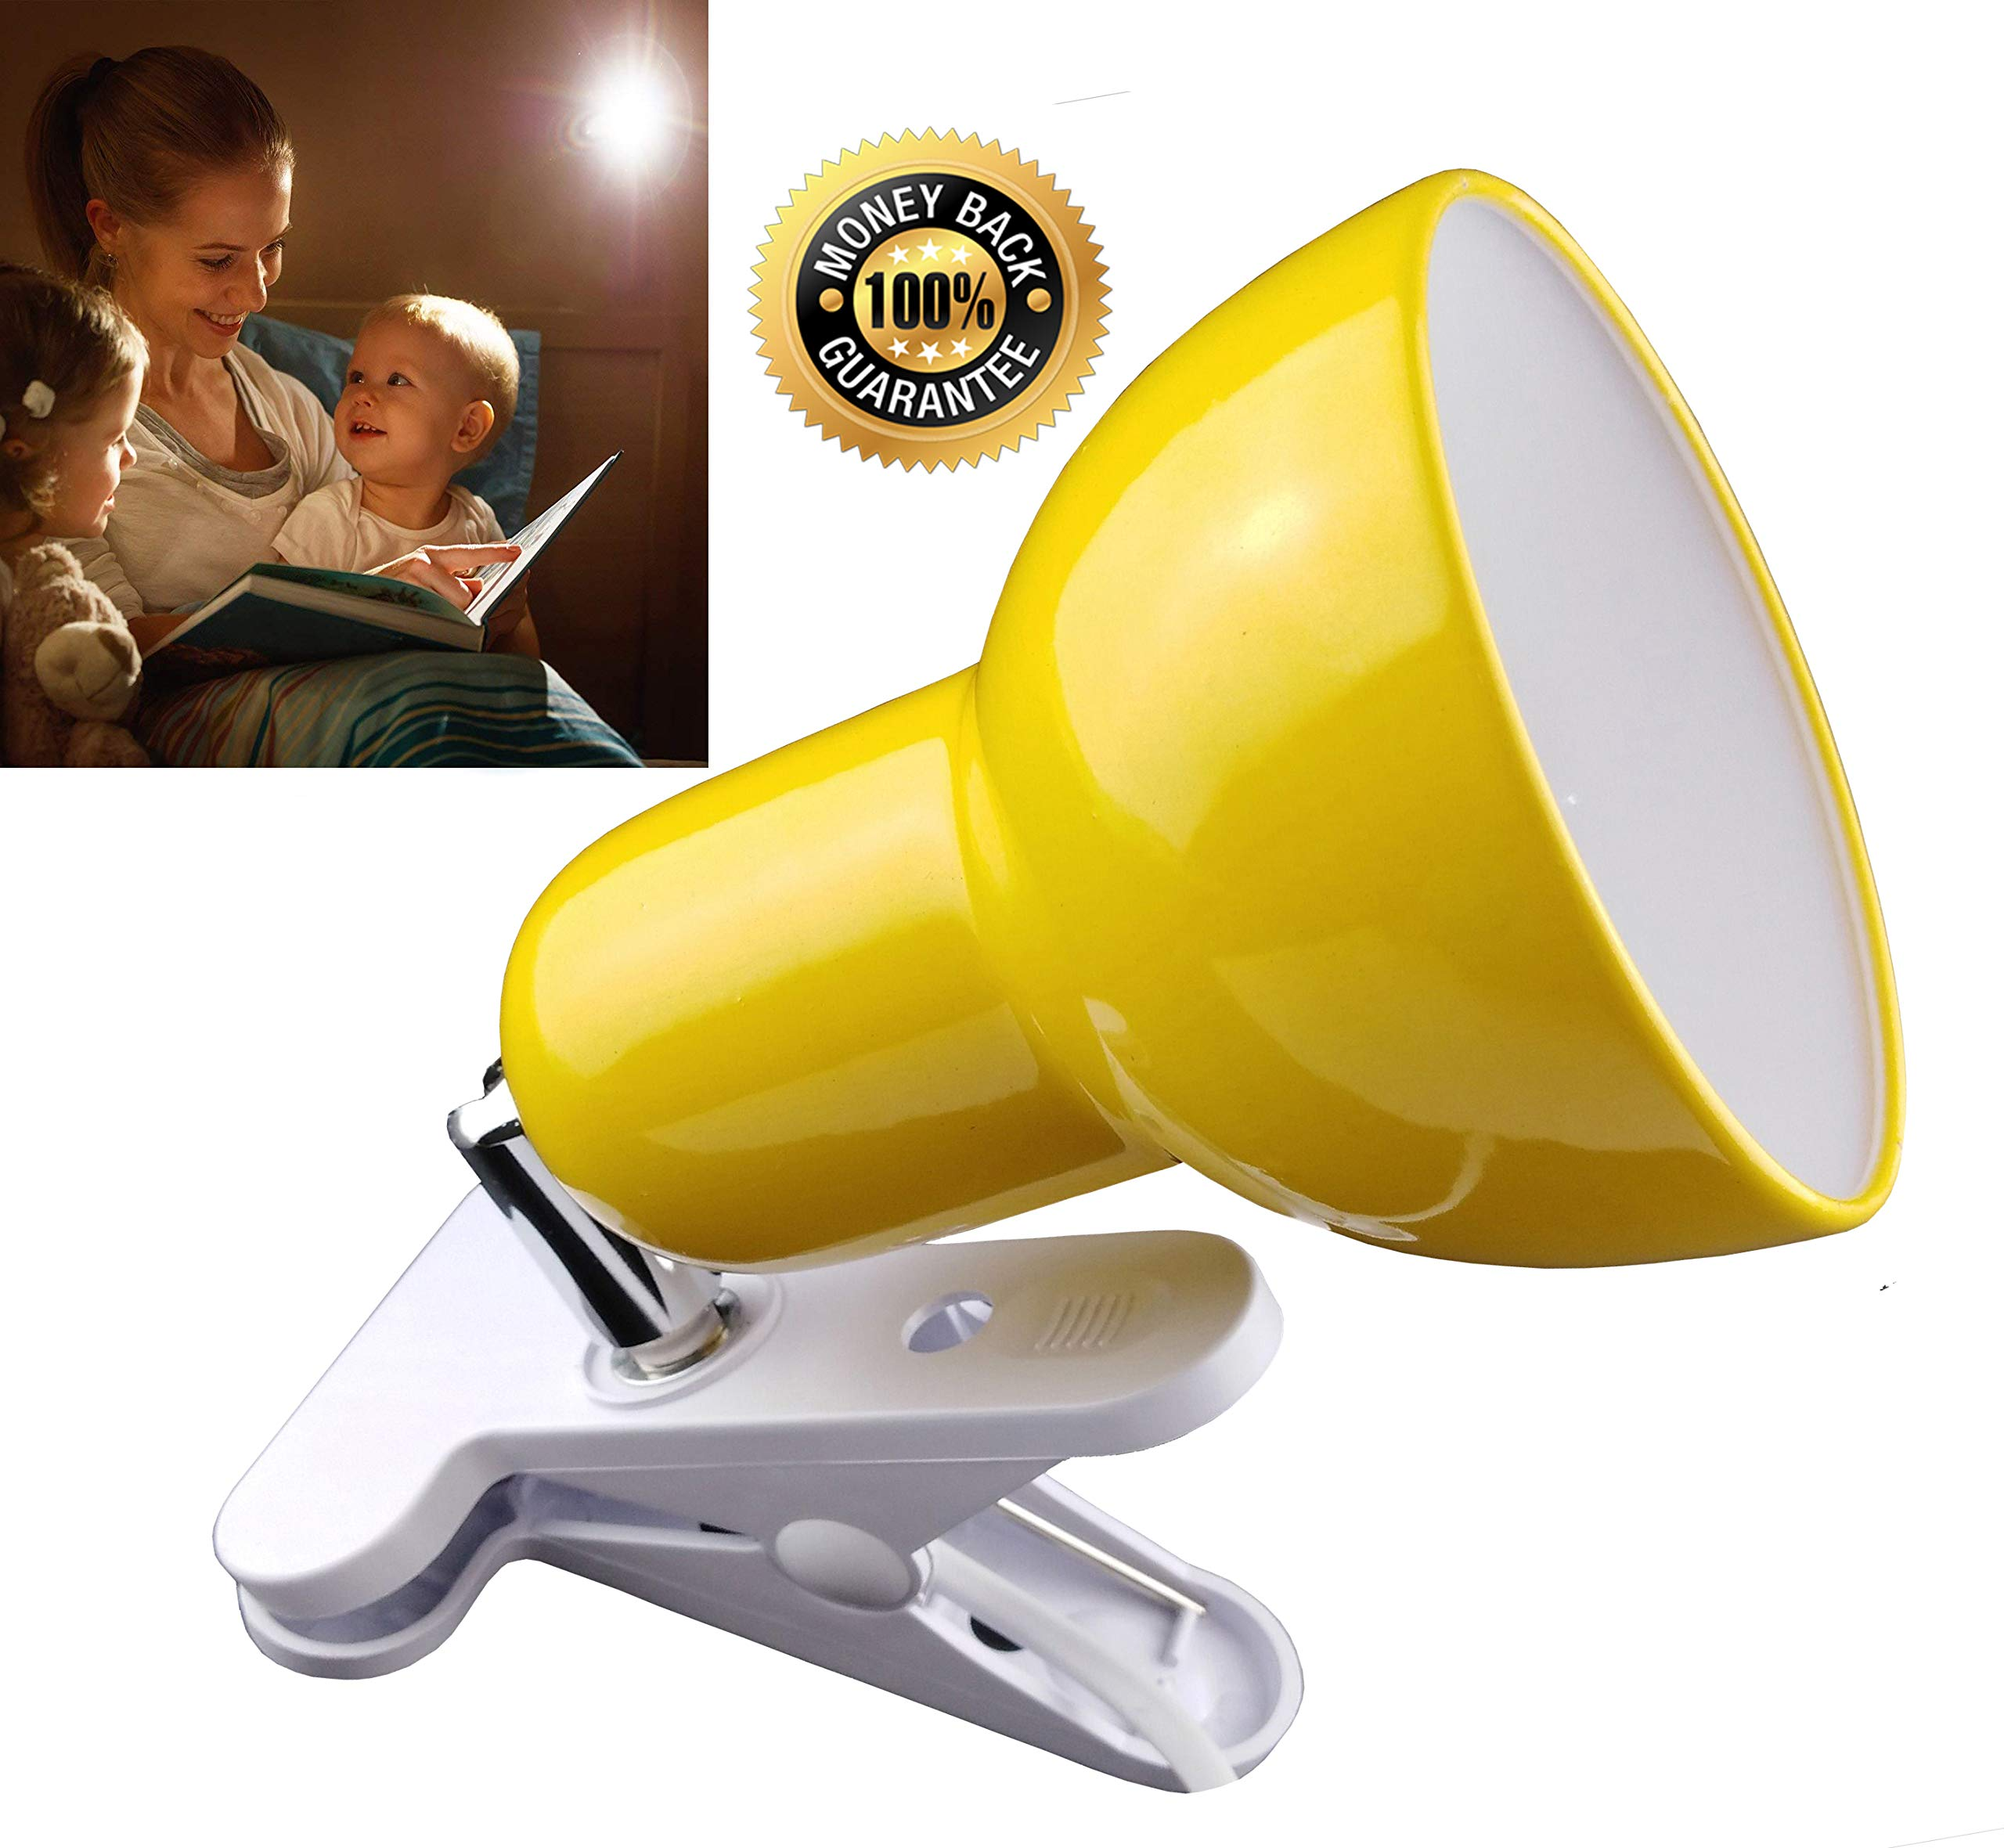 Clamp Light,360° Rotation Clip on Lamp Portable Book Reading Light,Clamp on Desk/Table/Bunk Bed/Cupboard Home Lighting, (Clamp Light, Seven Colors for Your Choice)''Yellow